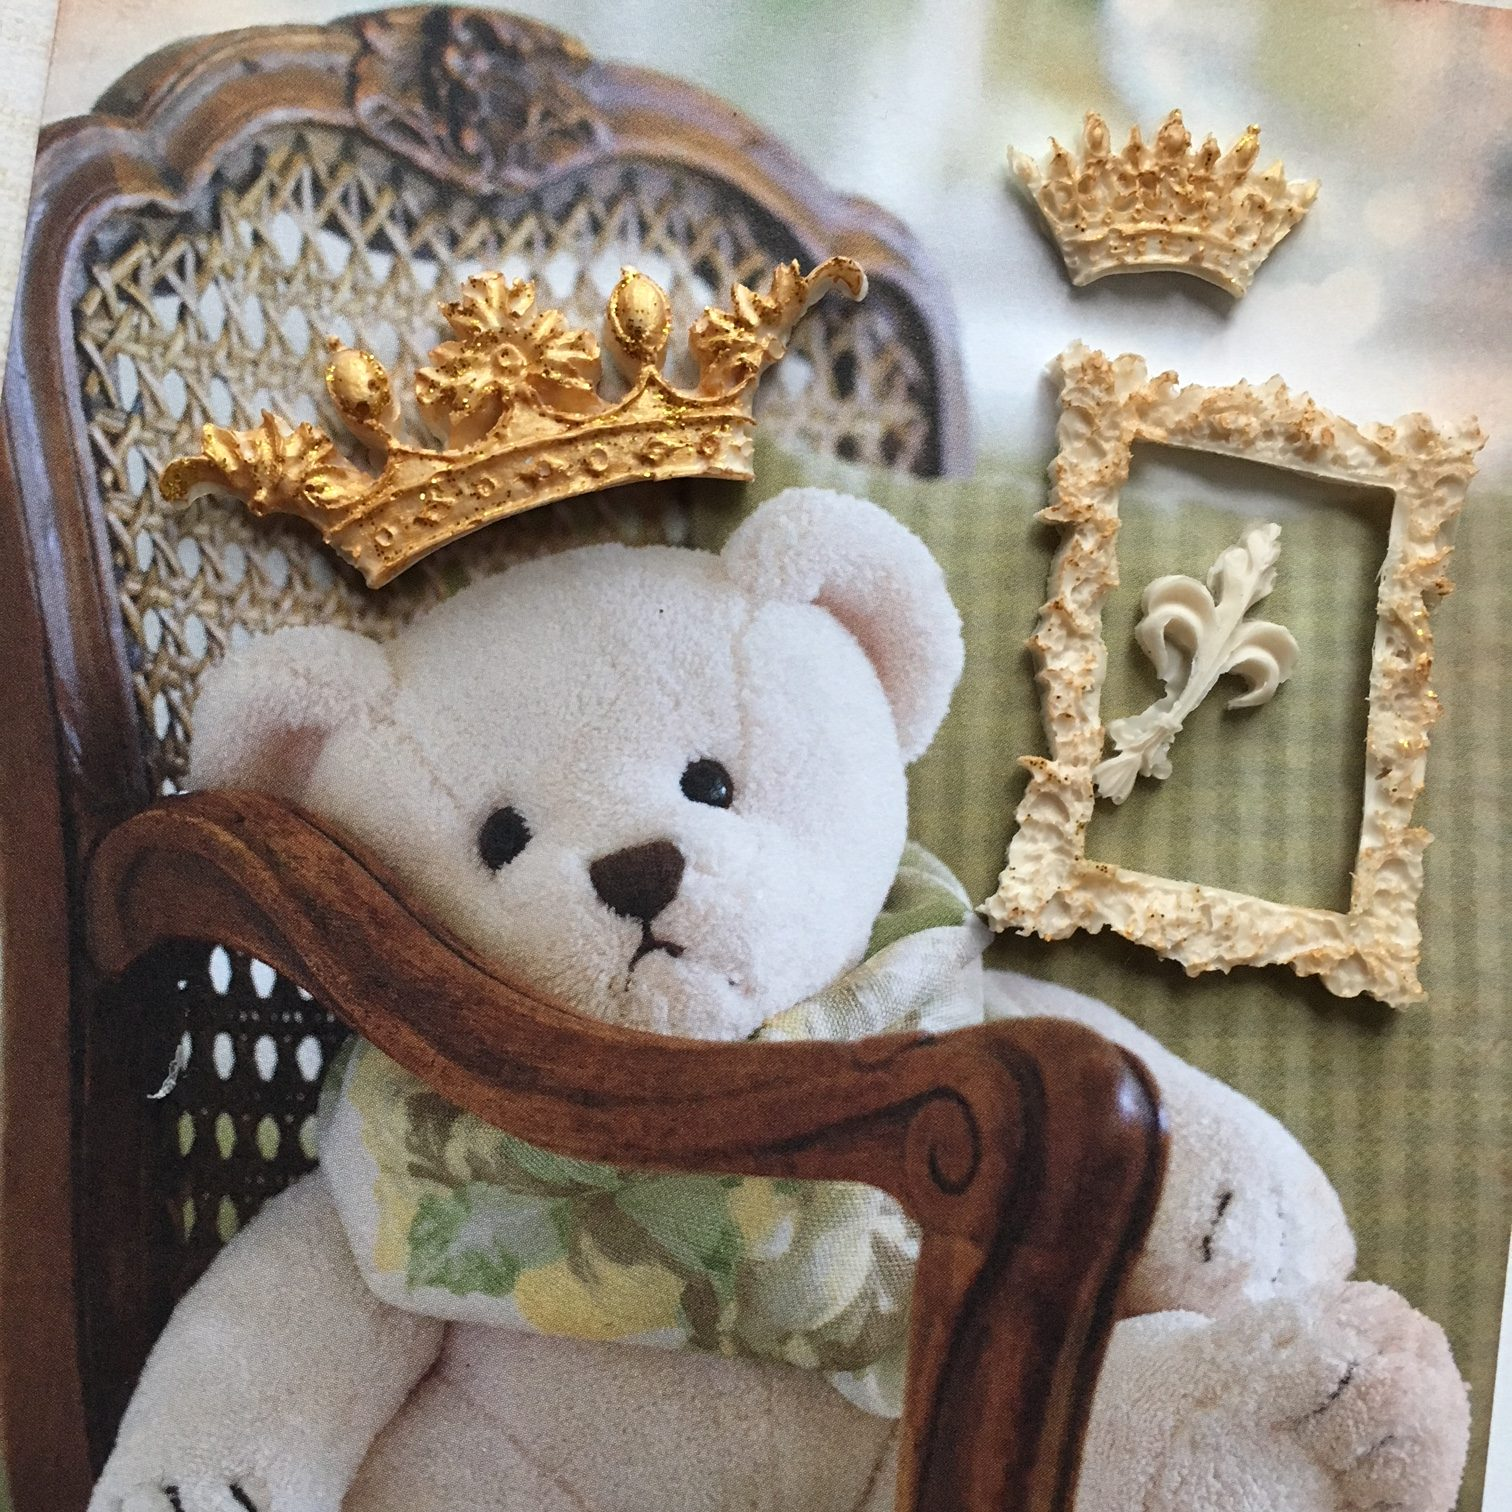 teddy bear scrapbook project - resin elements for extra decoration